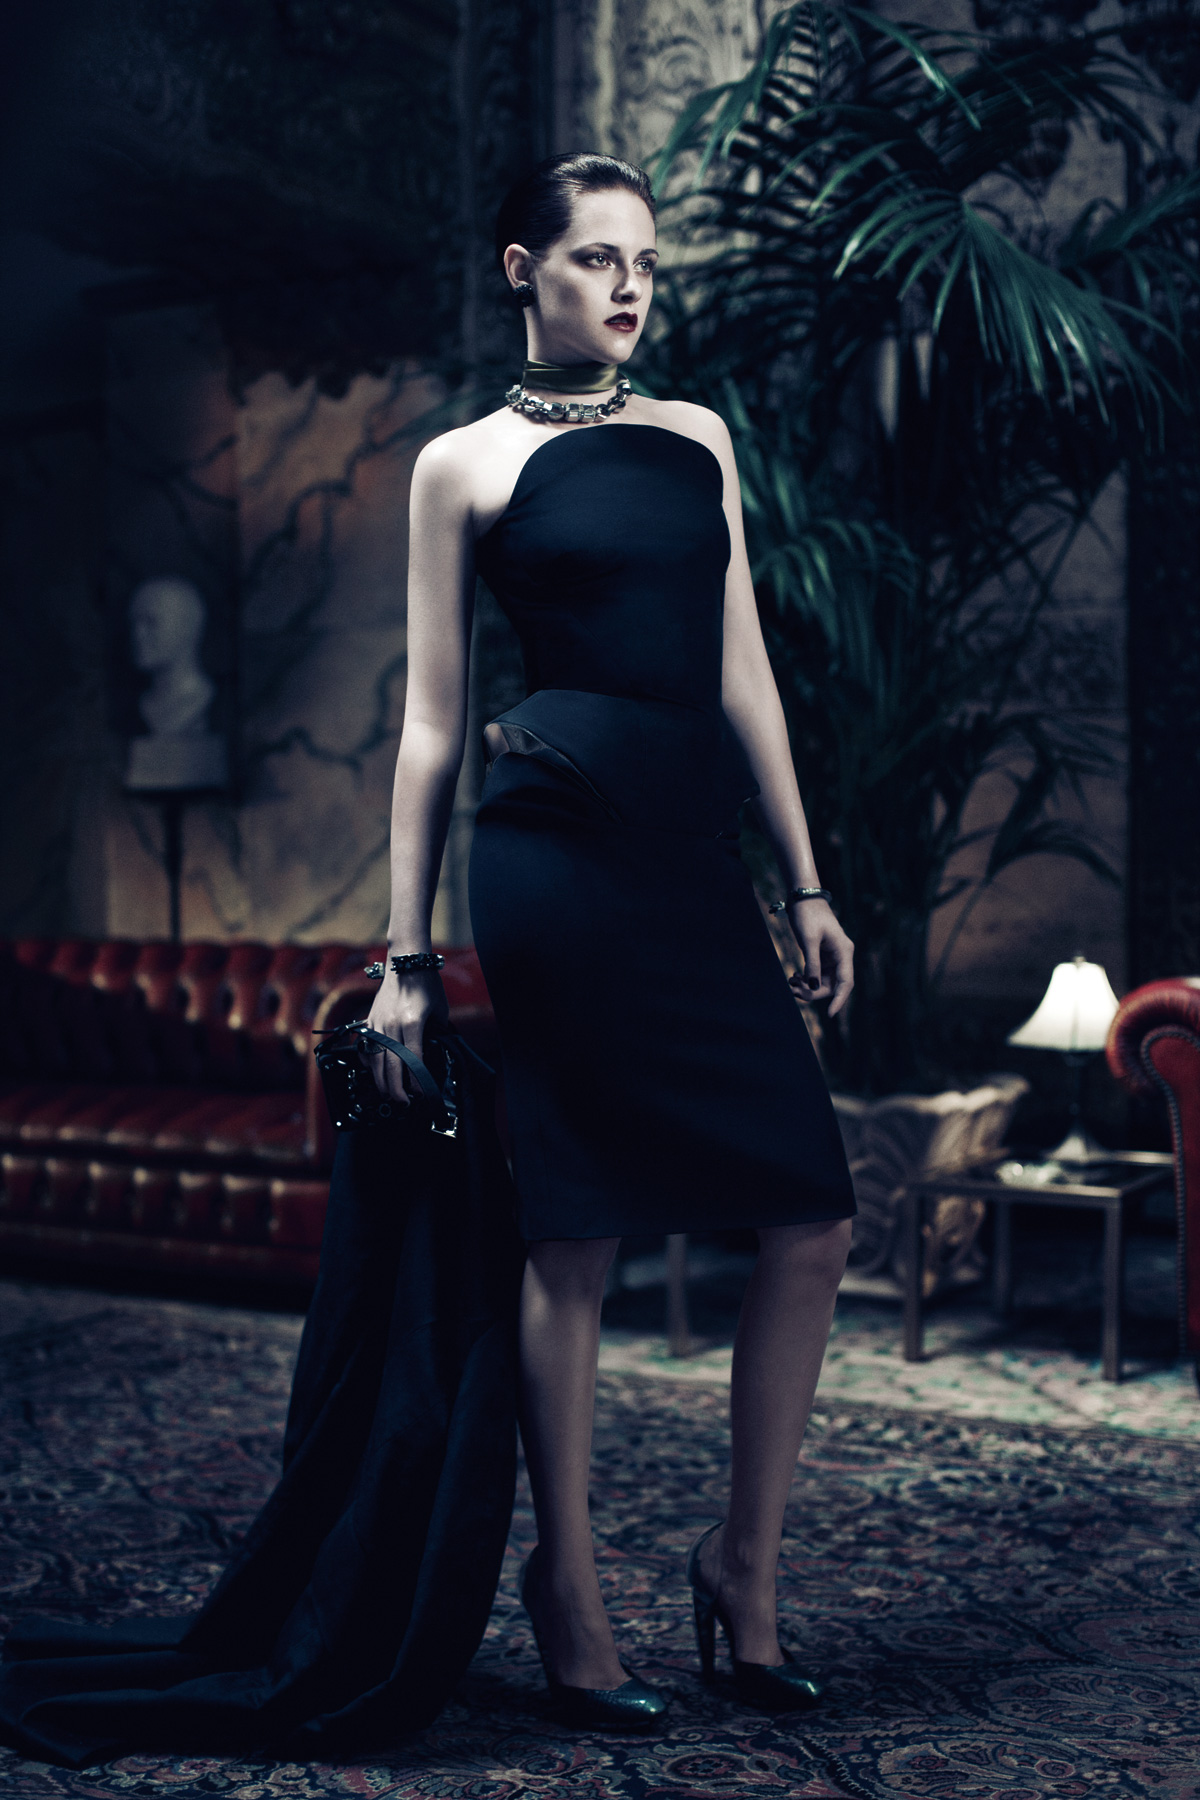 Charlize Theron and Kristen Stewart - Sexy photos from ...